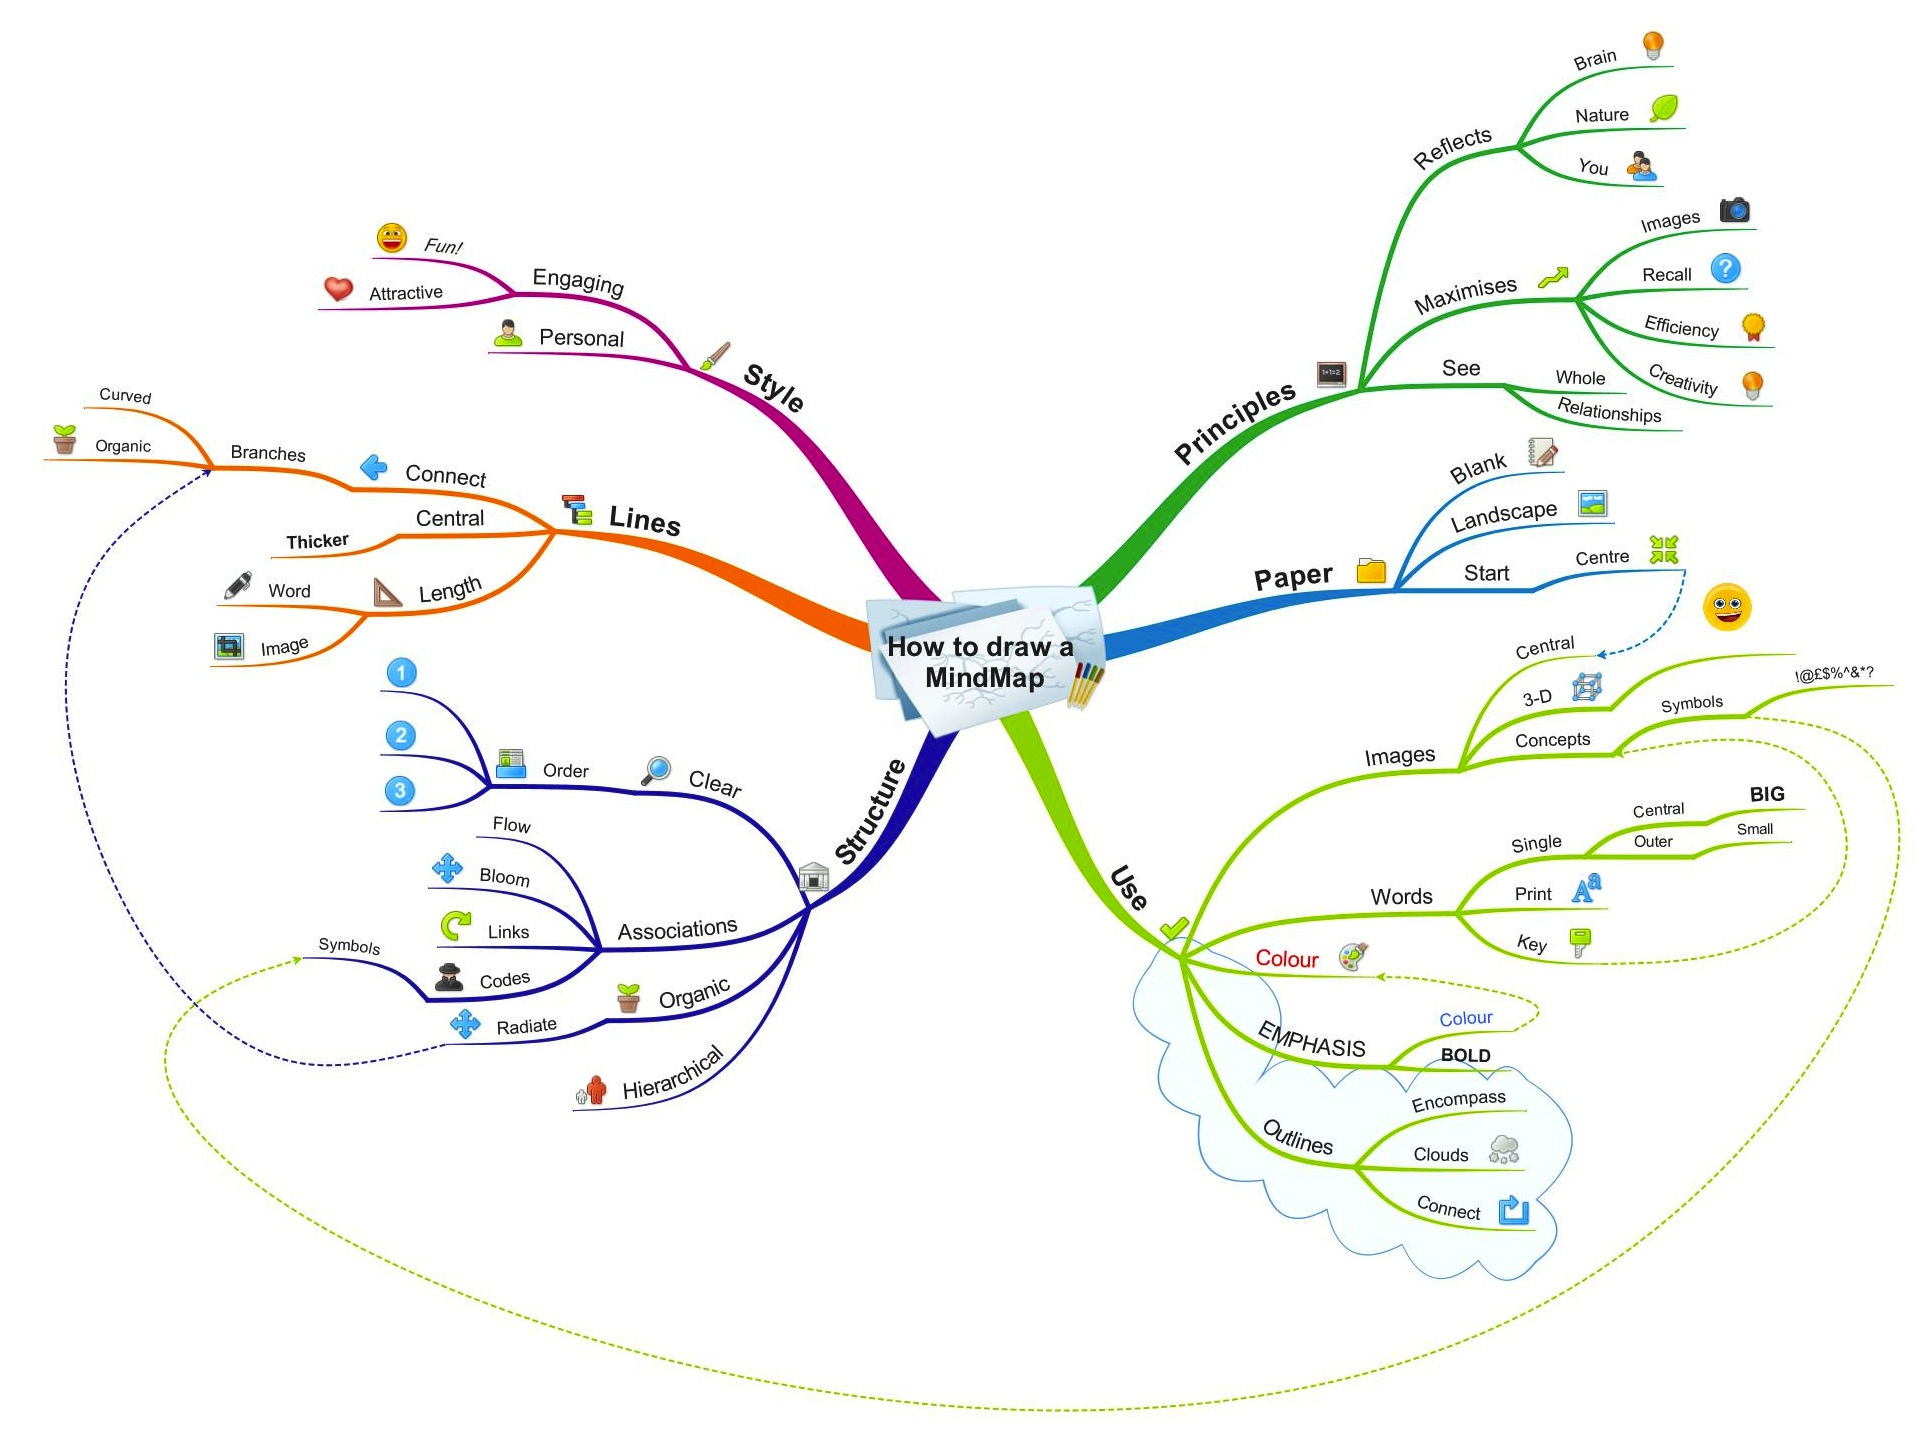 best mind mapping software - The Right Questions